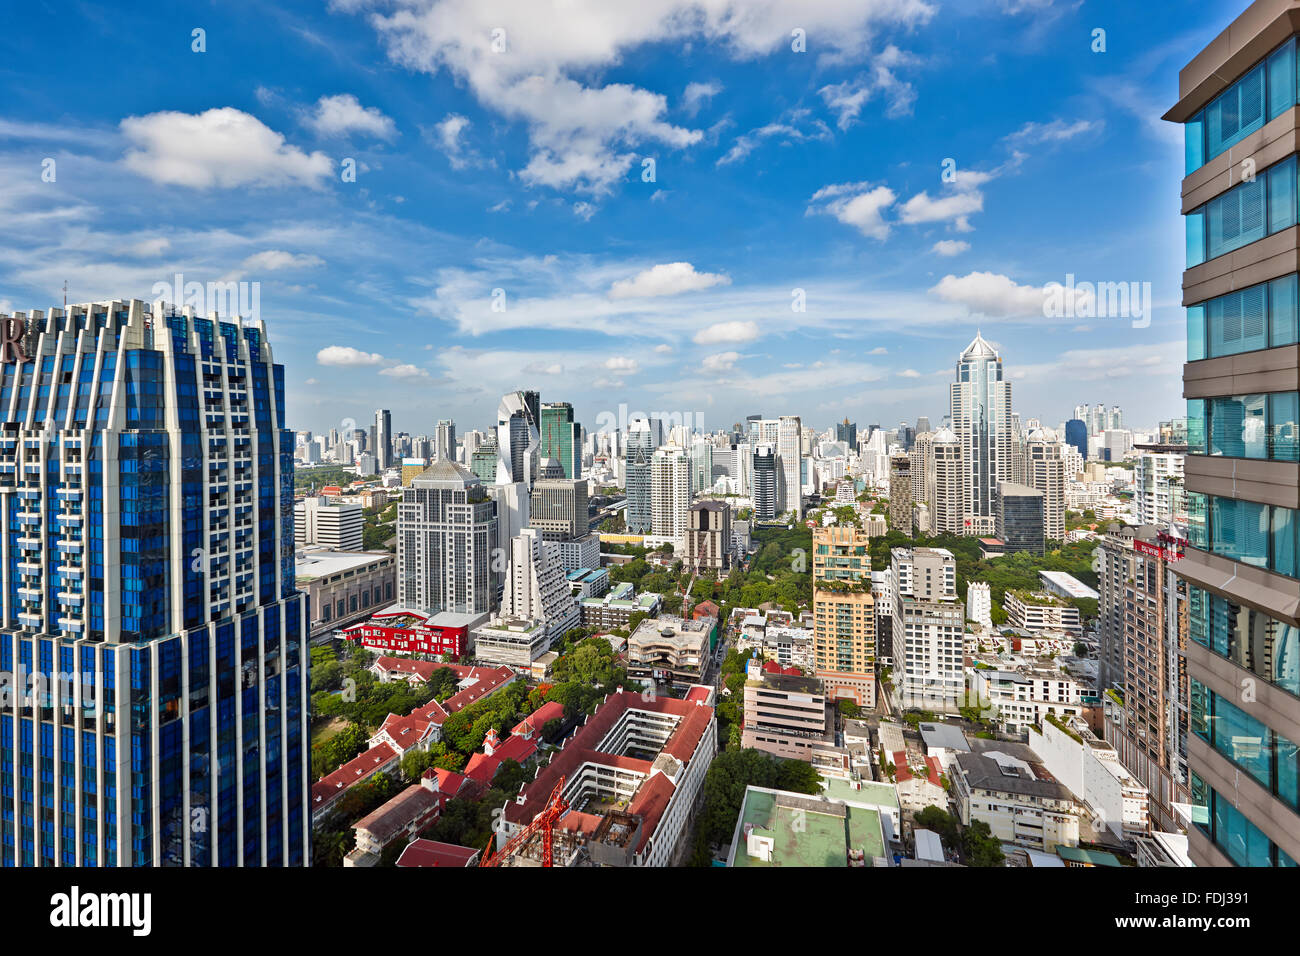 Portrait du sous-district de Lumphini. Pathum Wan District, Bangkok, Thaïlande. Photo Stock